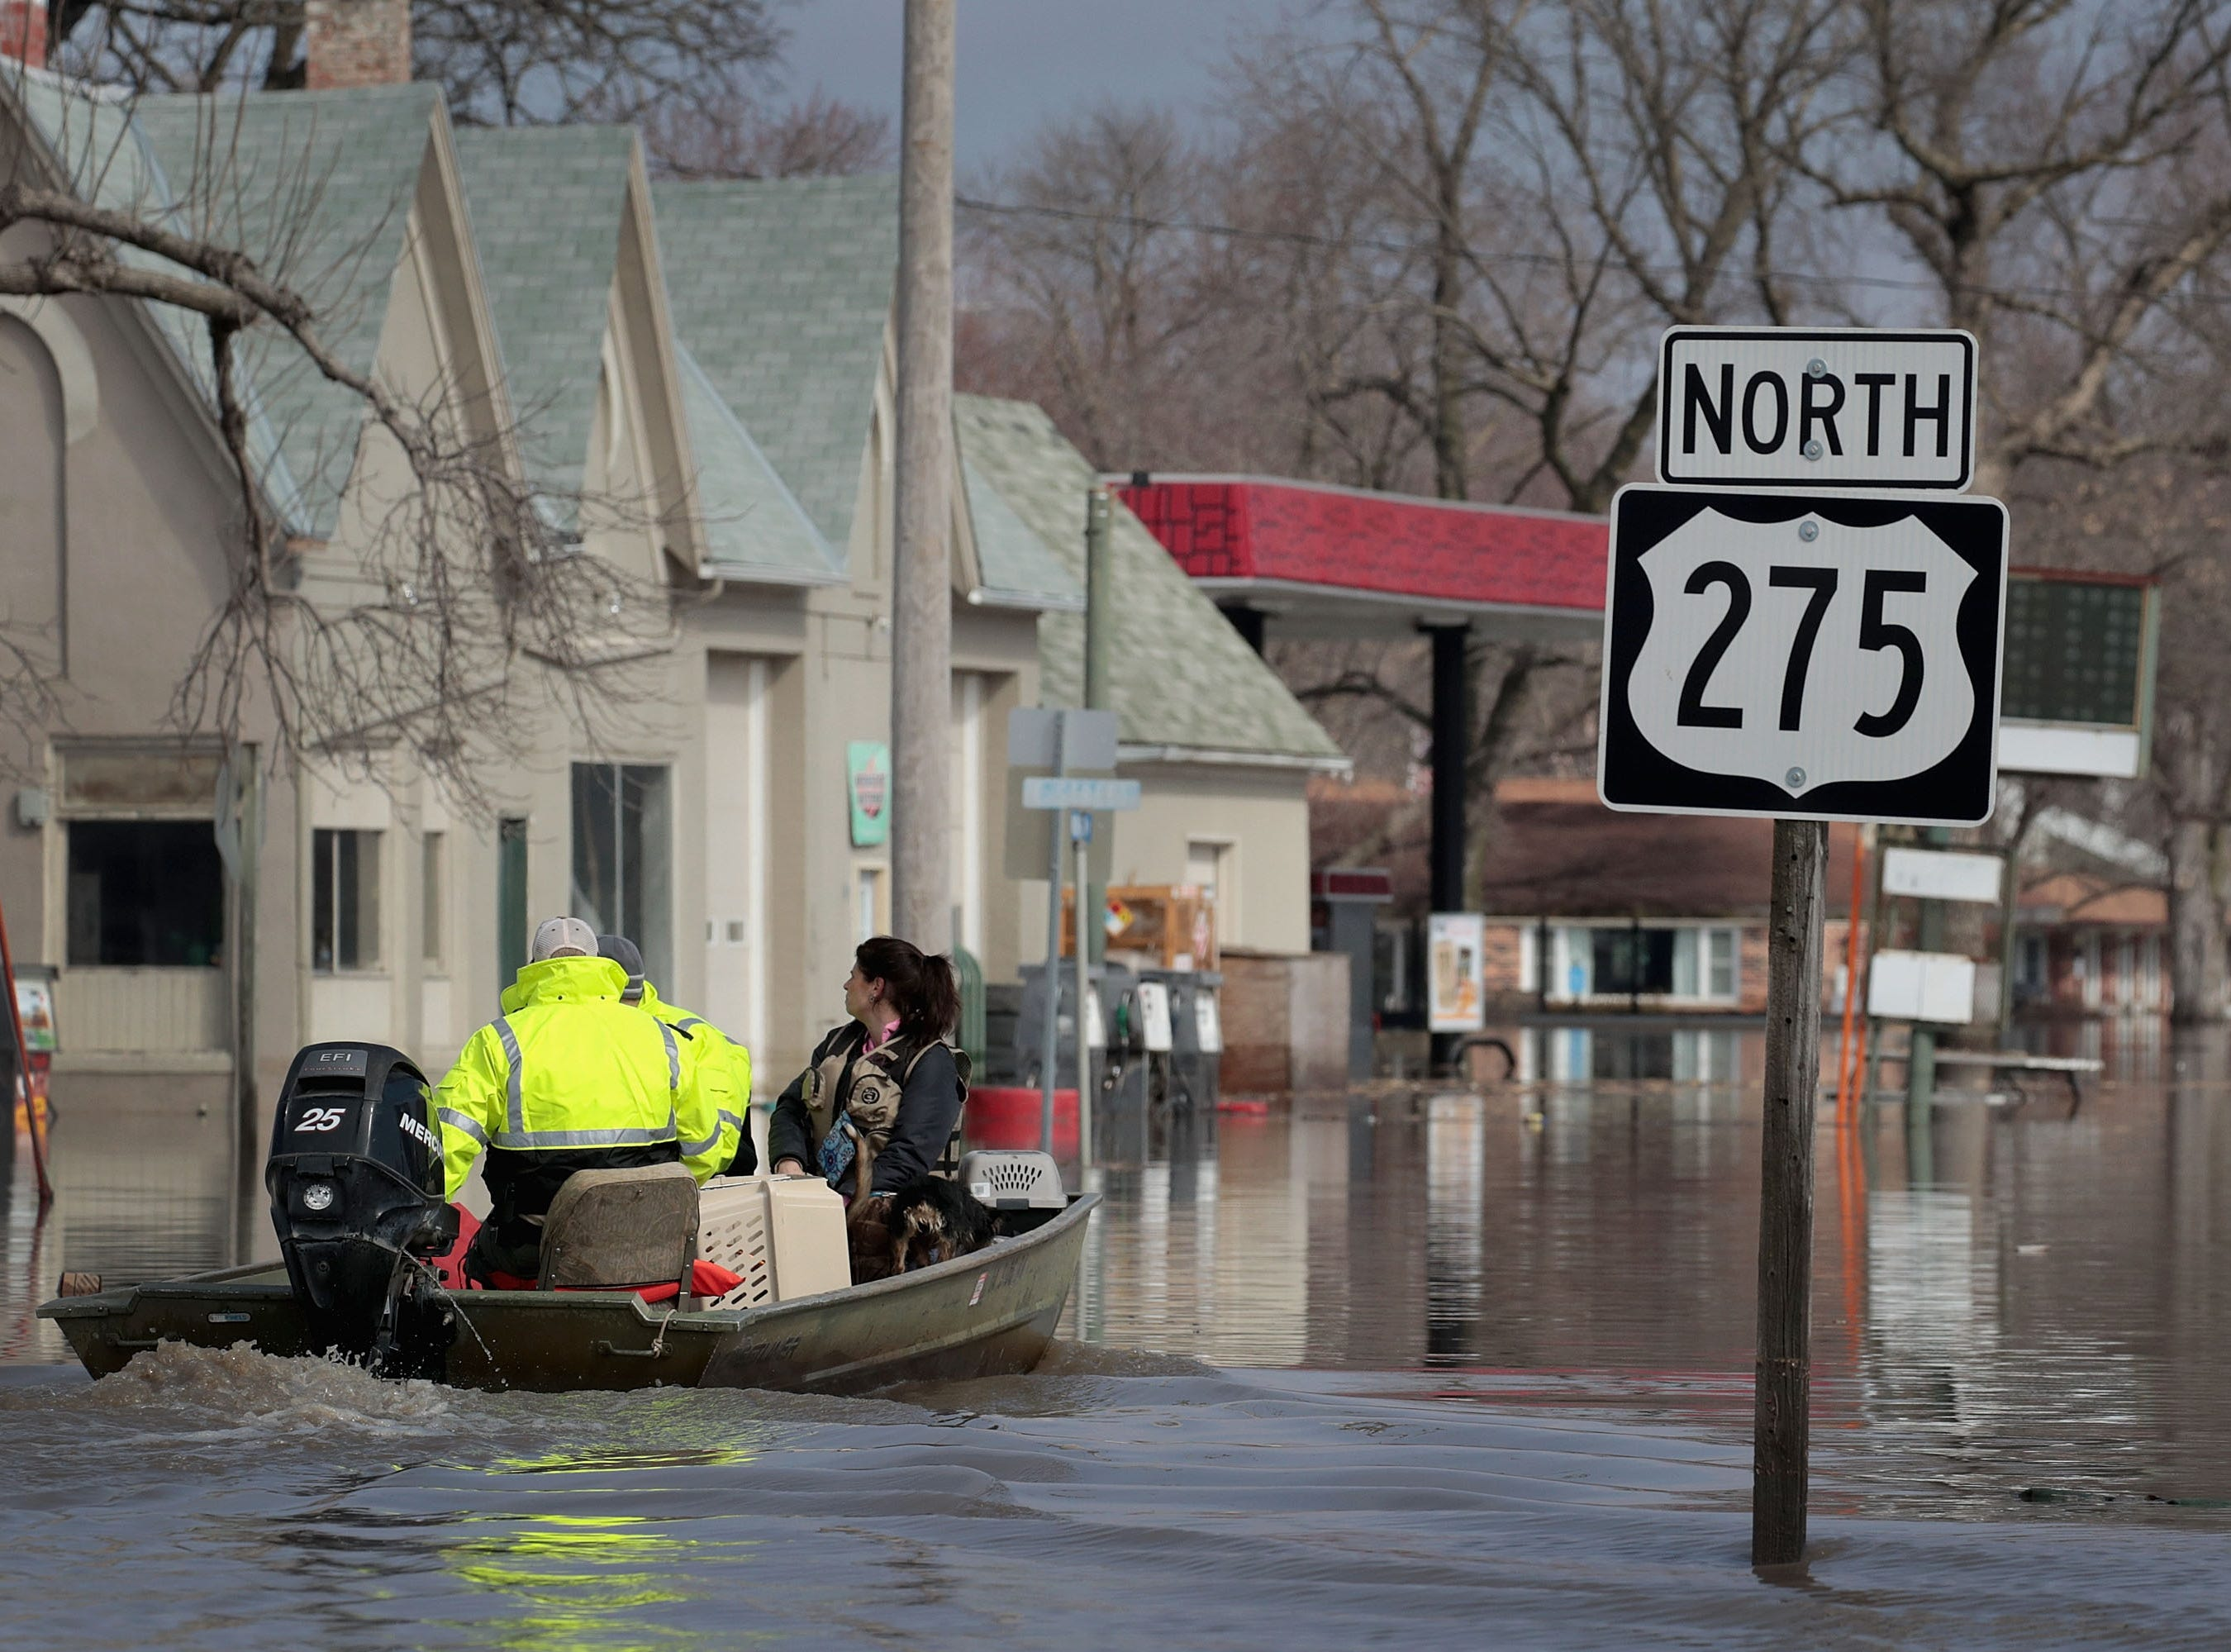 """A boater travels down a flooded street on March 20, 2019 in Hamburg, Iowa. Although flood water in the town has started to recede many homes and businesses in the town remain surrounded by water. Several Midwest states are battling some of the worst flooding they have experienced in decades as rain and snow melt from the recent """"bomb cyclone"""" has inundated rivers and streams. At least three deaths have been linked to the flooding."""